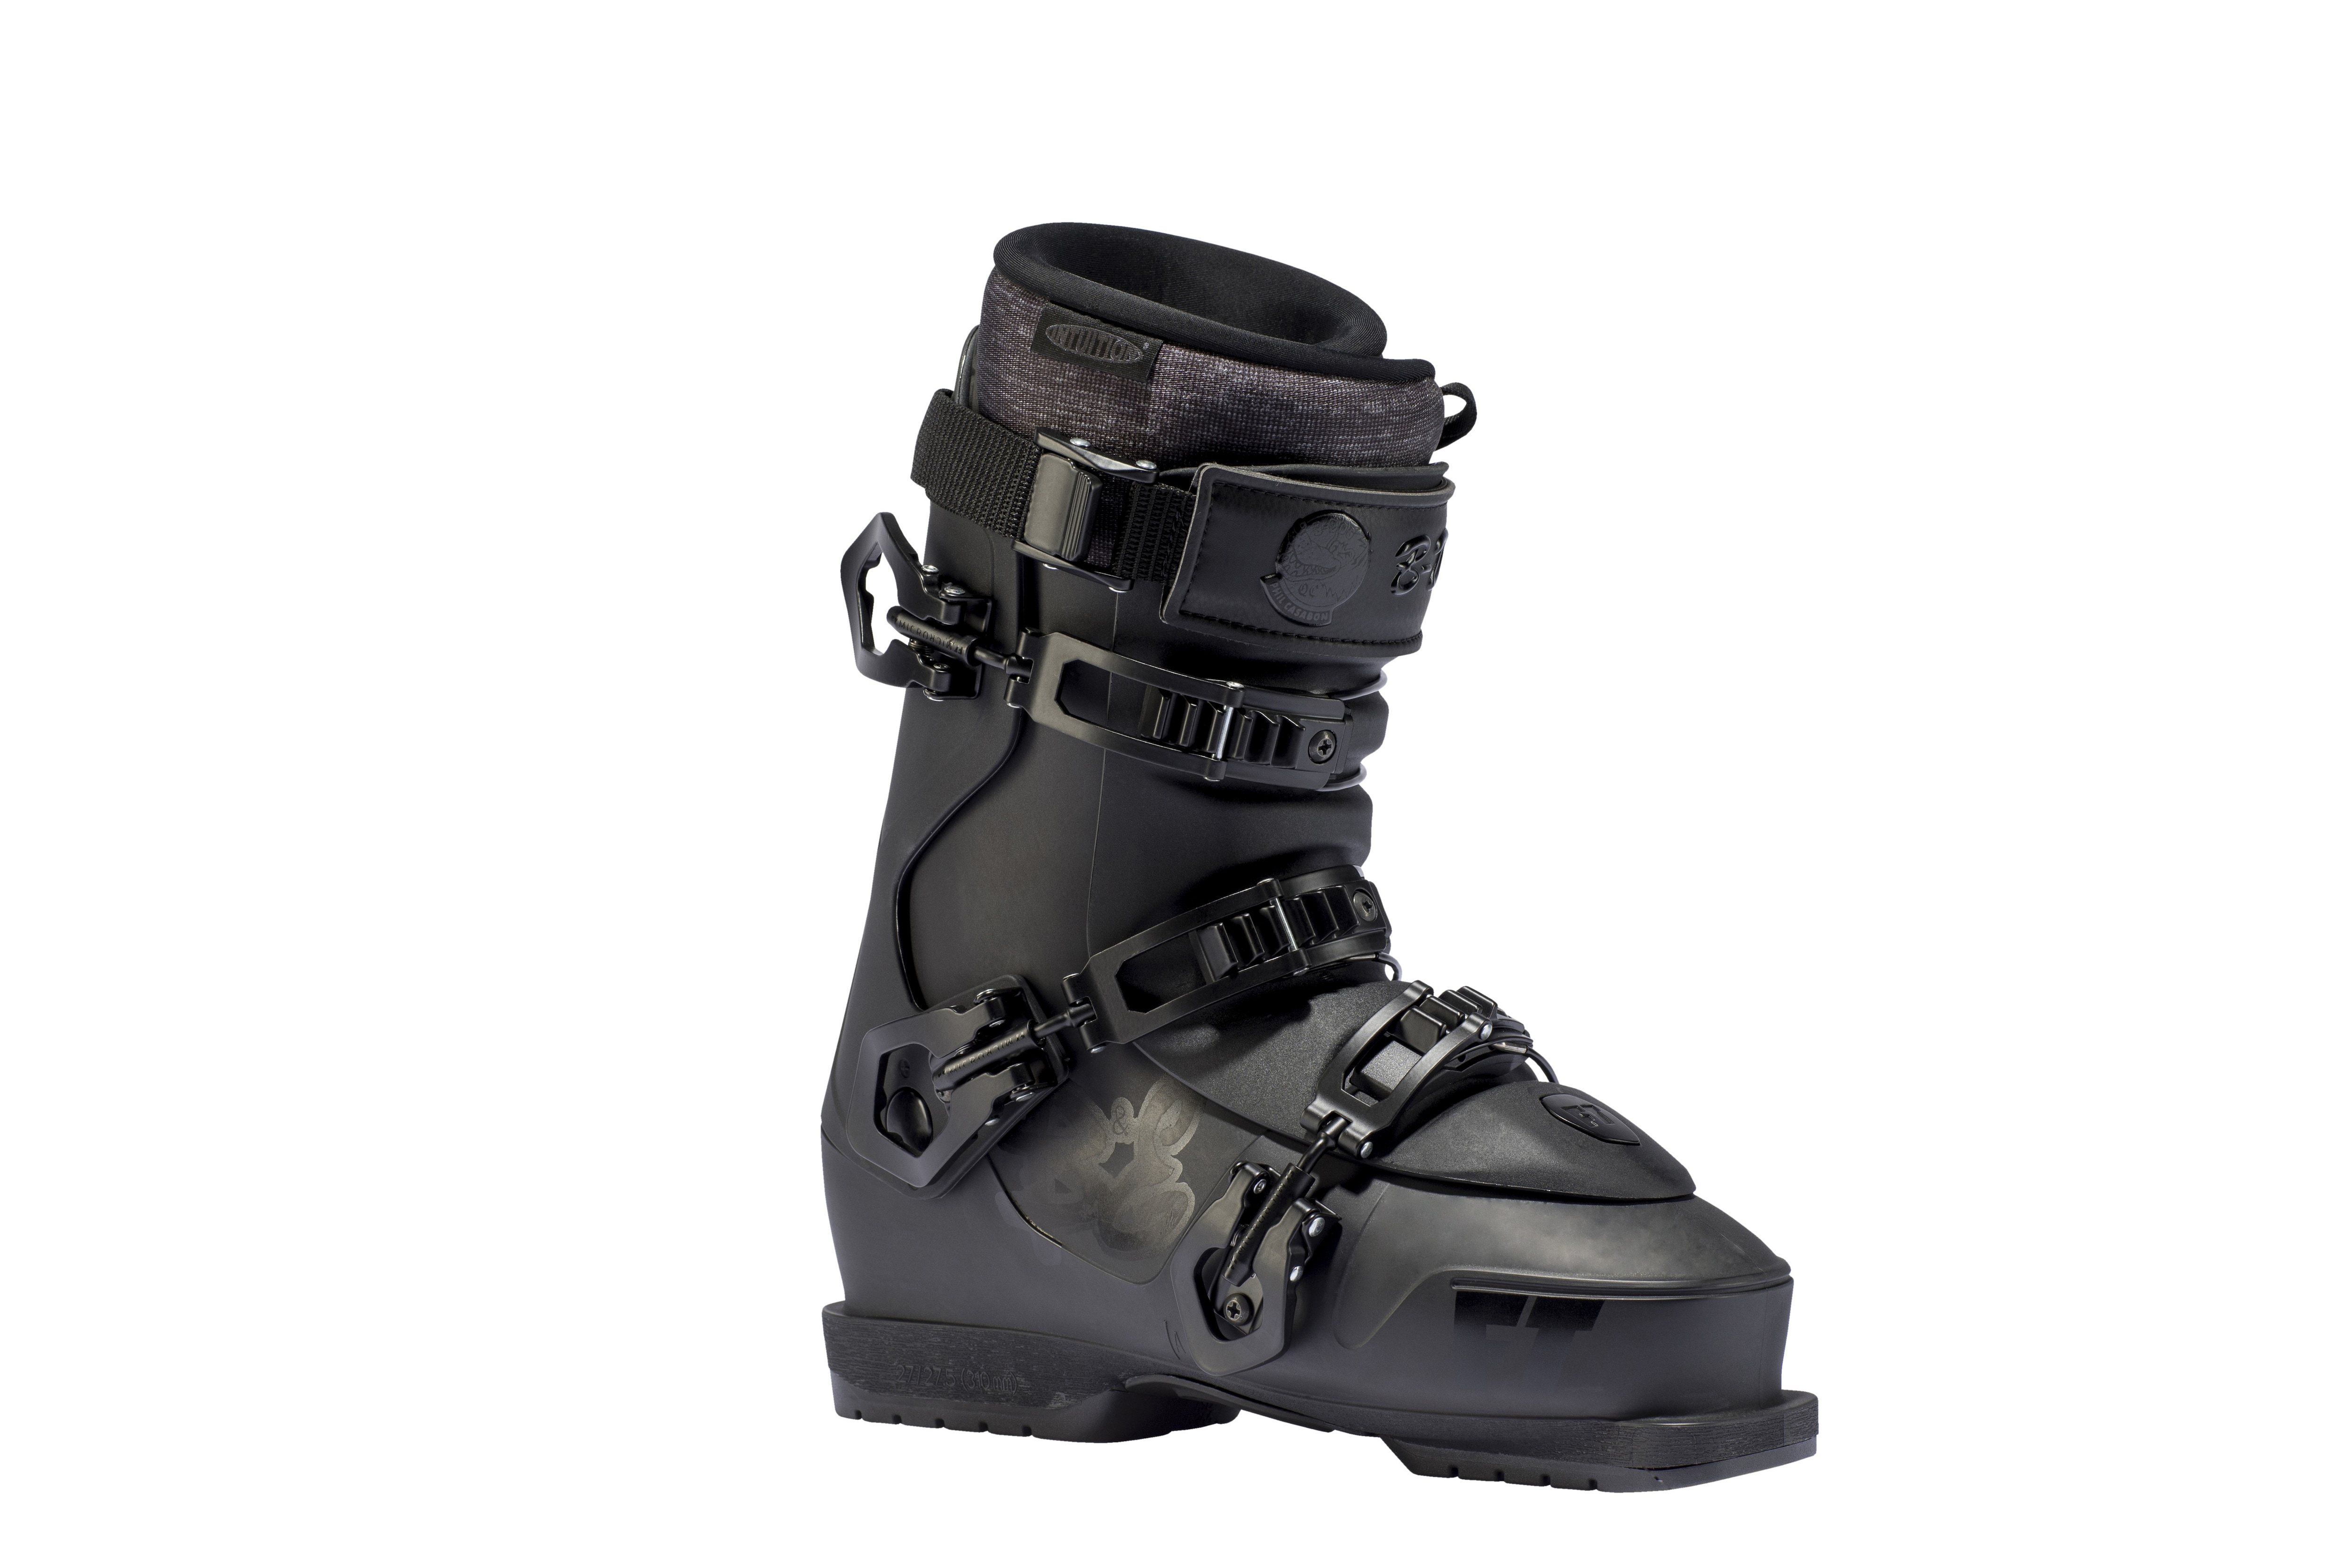 Ski Boots   Large Selection for Freeride, touring, park